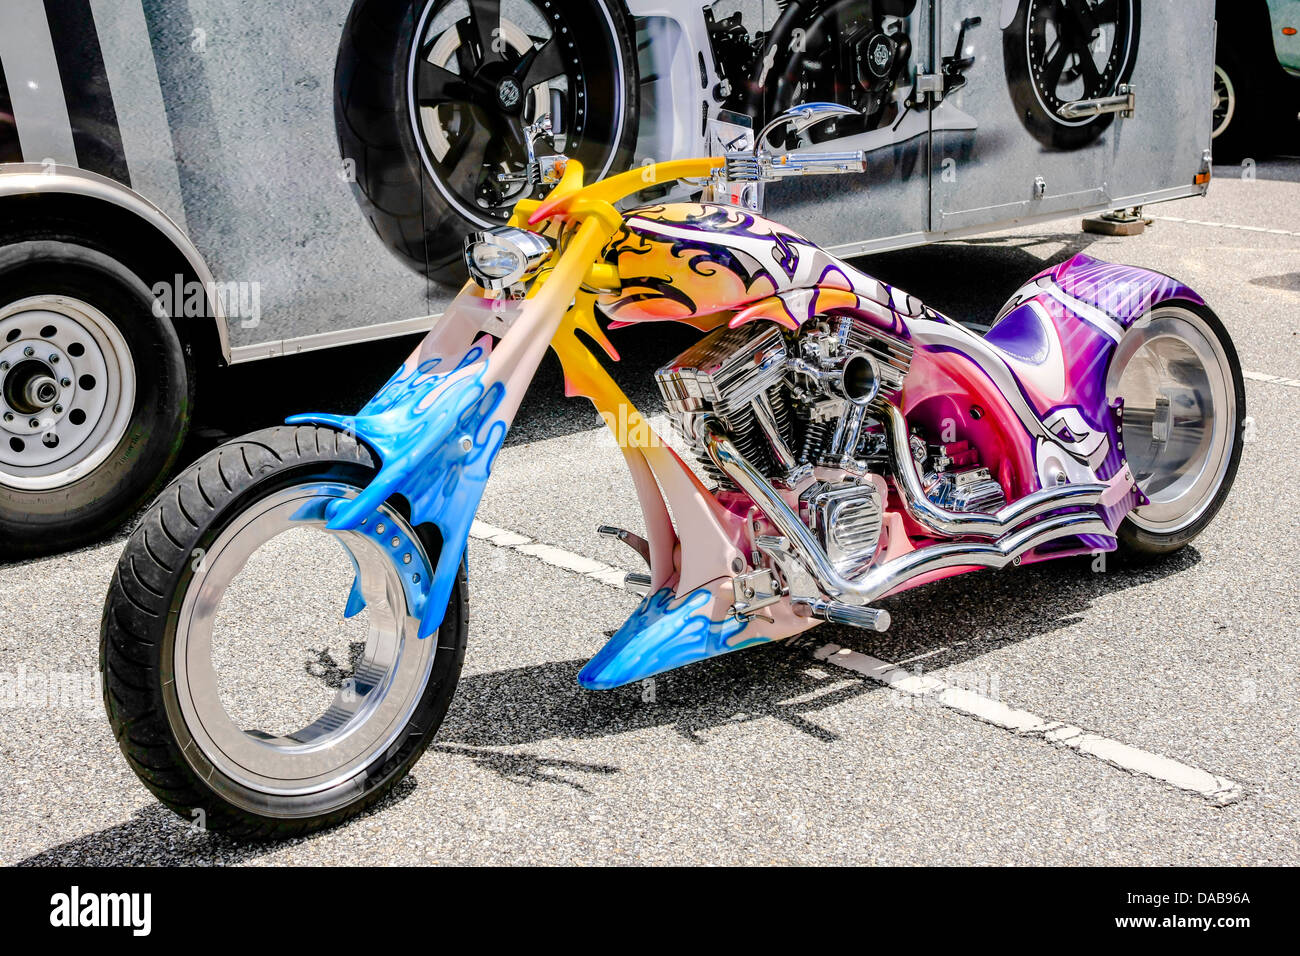 A concept motorcycle on show at a local event in Sarasota FL - Stock Image